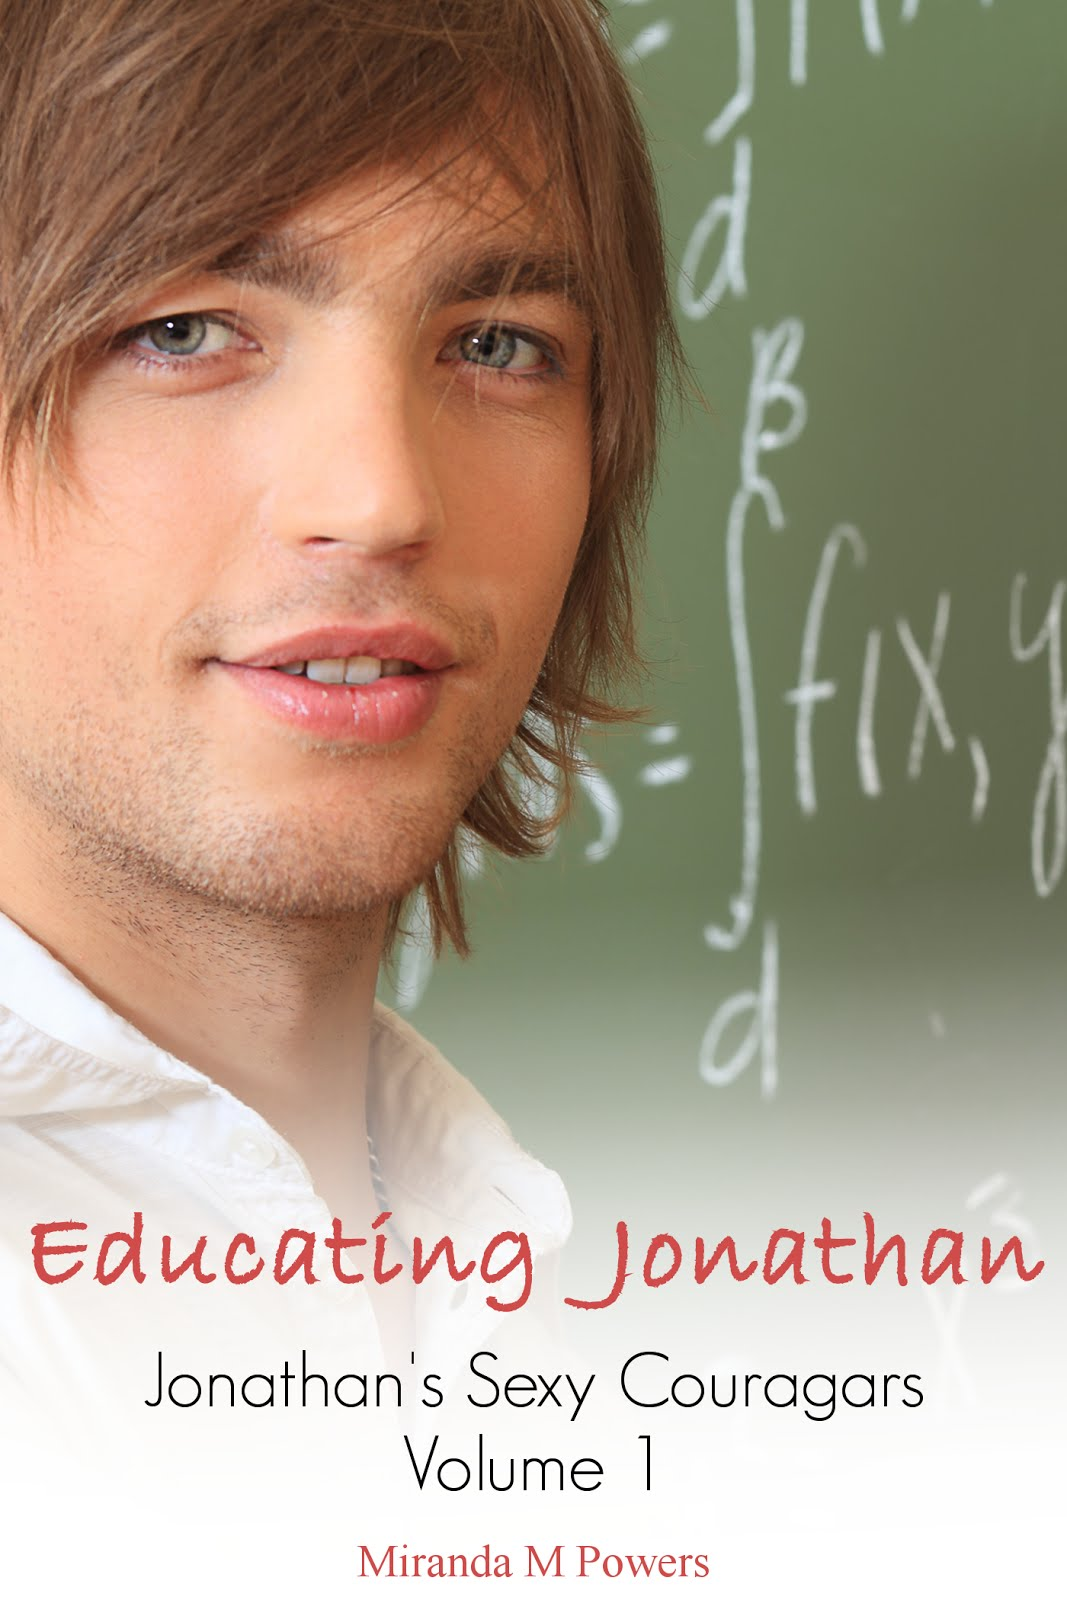 Find out why Jonathan is so popular with the cougars!